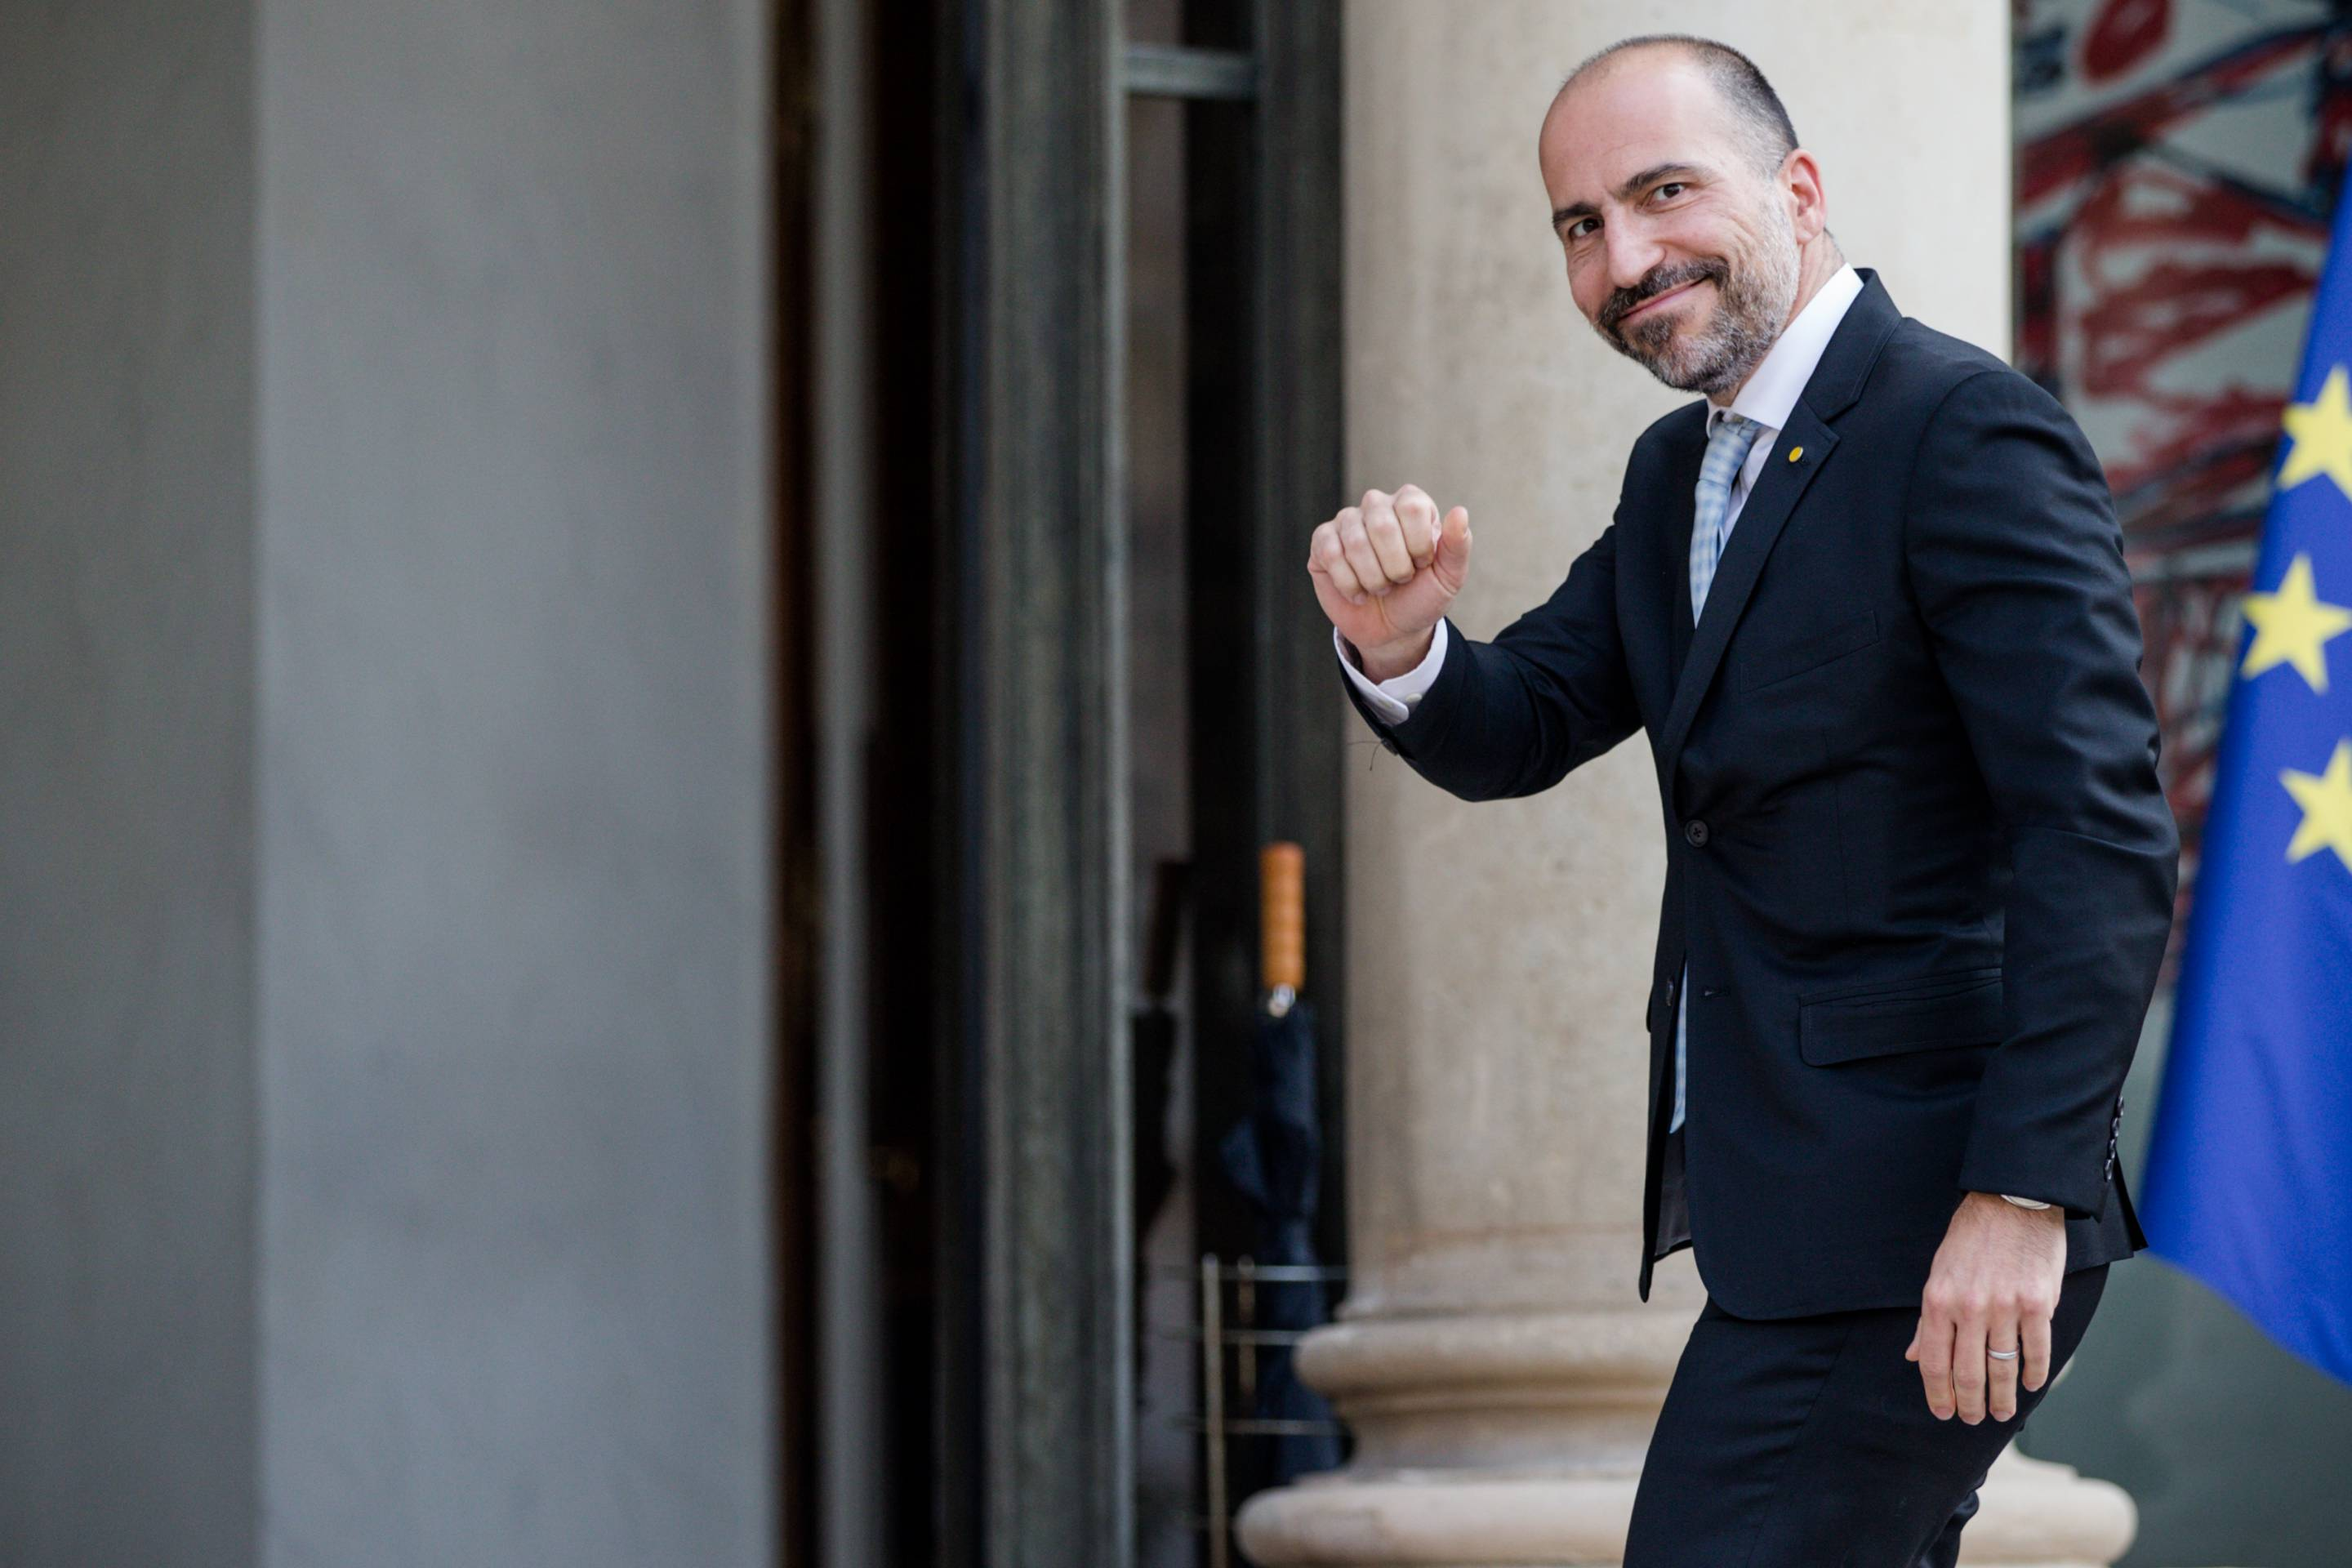 Uber CEO Dara Khosrowshahi arrives at the Elysee Palace for a meeting with the French president on May 23, 2018 in Paris.